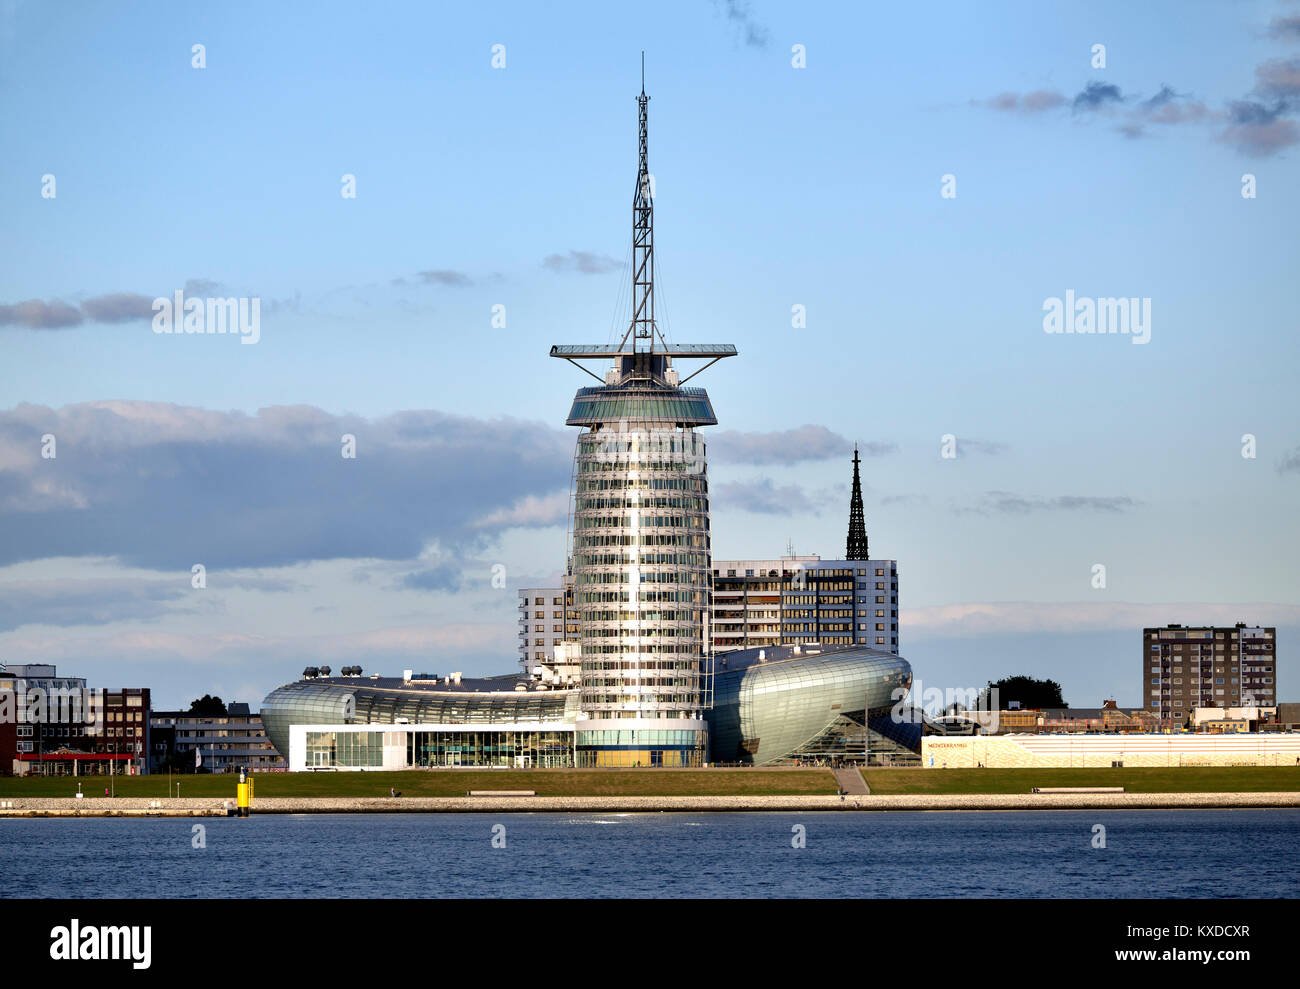 Klimahaus 8° East and Atlantic Hotel Sail City,Bremerhaven,Bremen,Germany - Stock Image